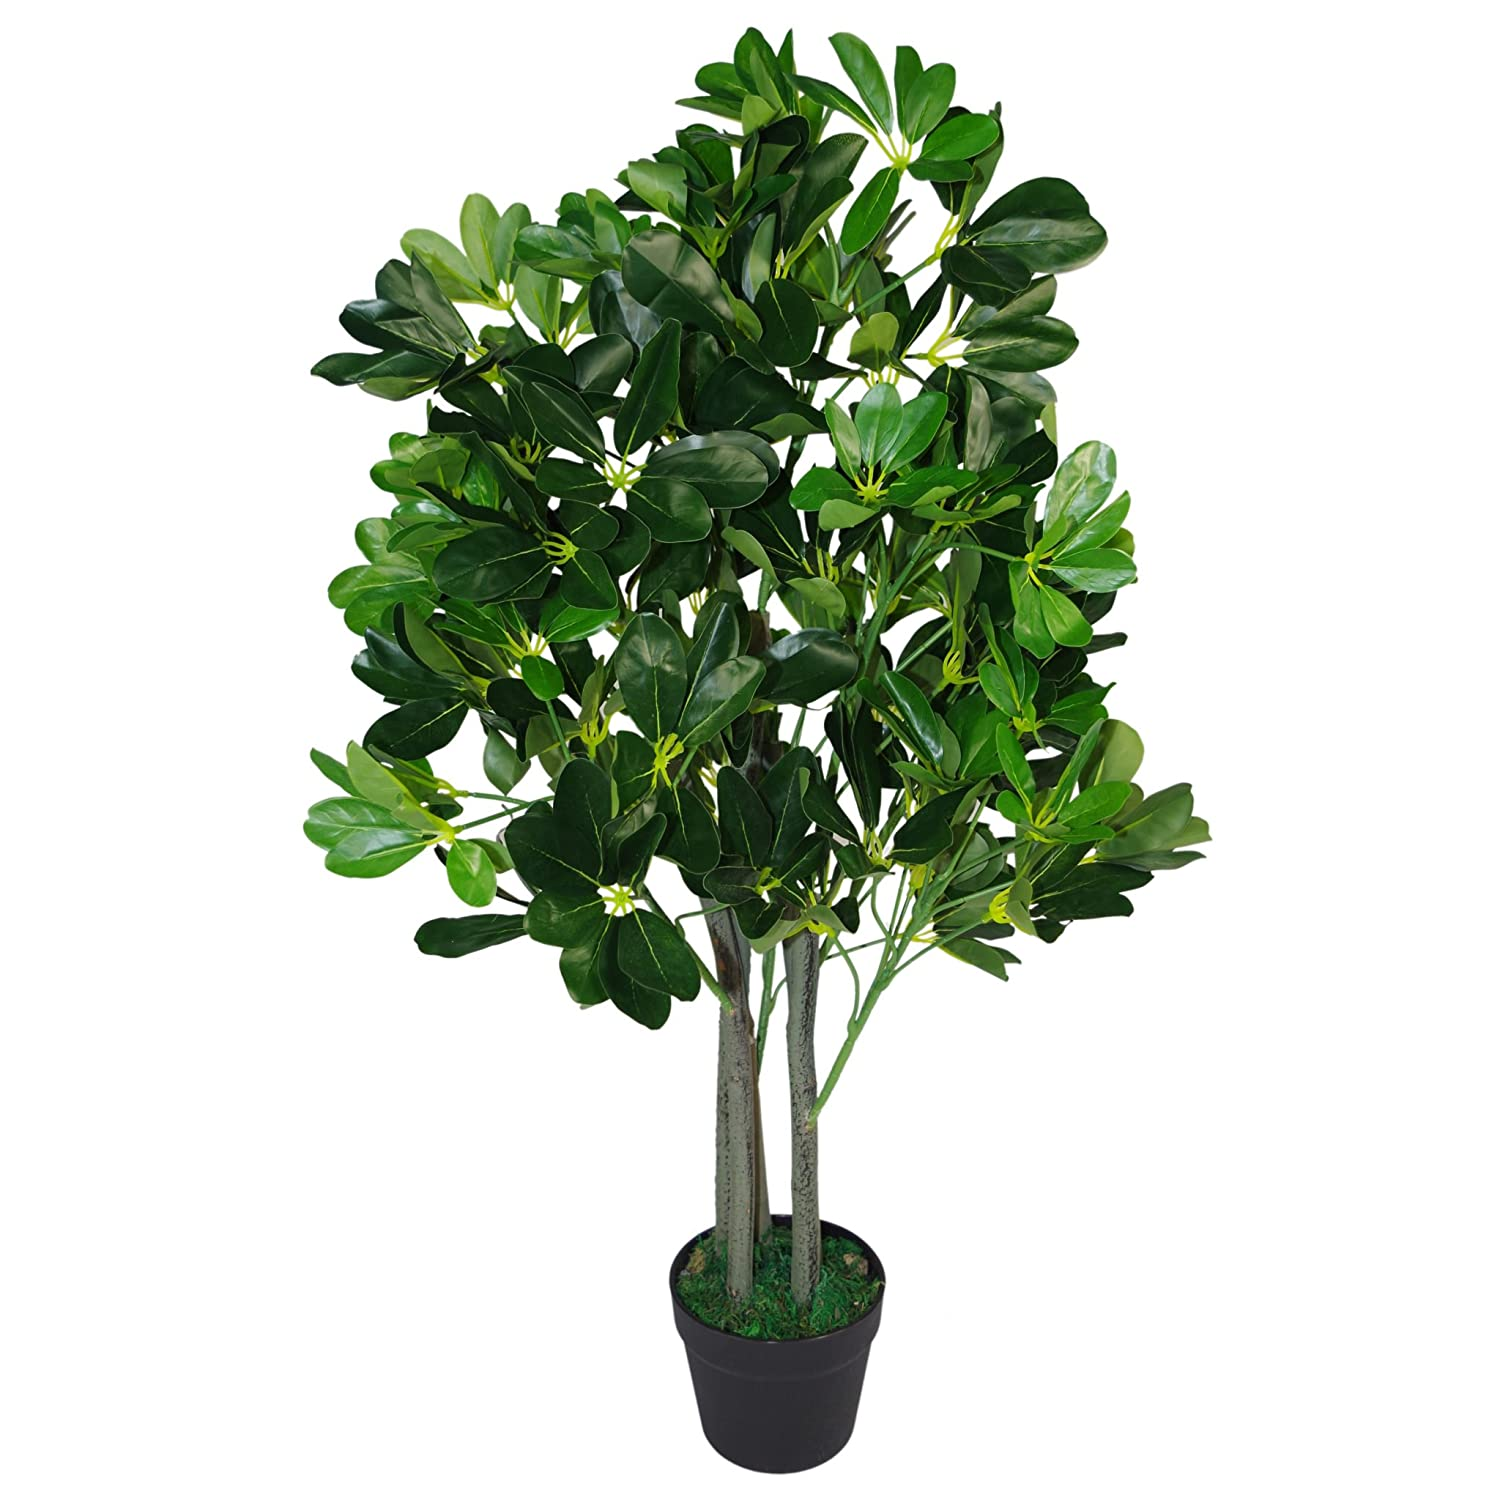 Extra Large Artificiel Evergreen Ficus Plant en Plastique Noir Pot 95cm Umbrella Tree Vert Fonc/é